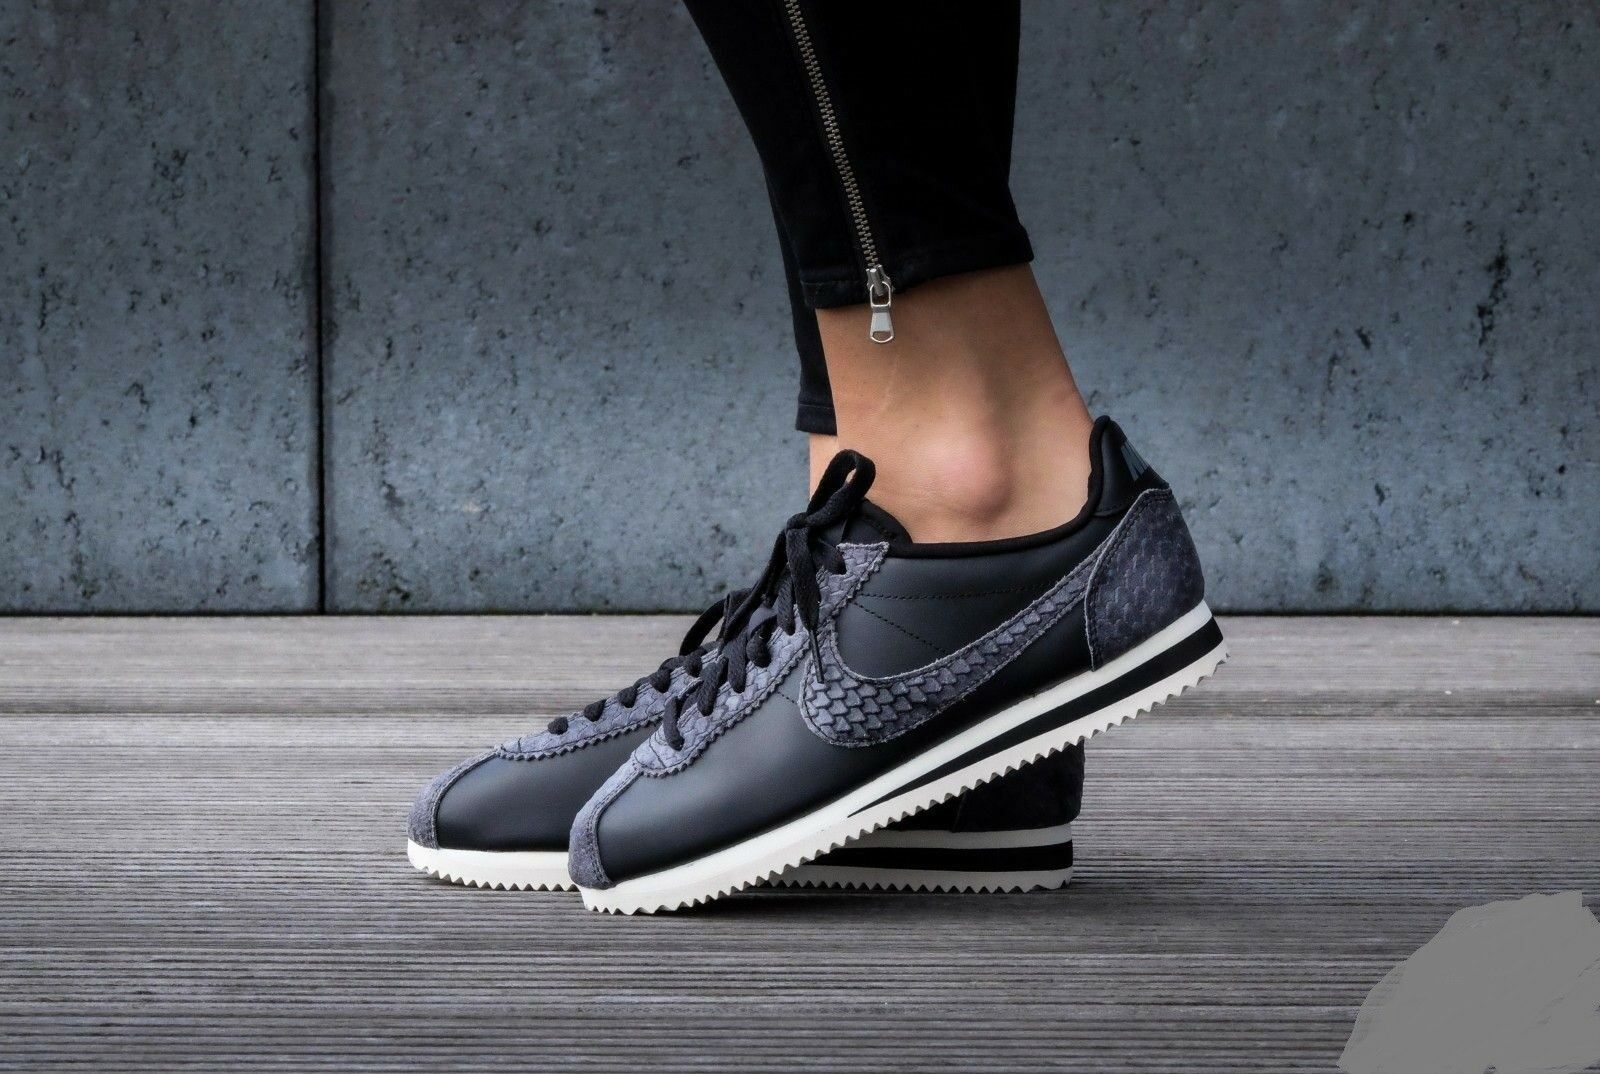 330a1d0fb131 Womens Nike Classic Cortez Premium Black Sail 9 905614-002 for sale ...